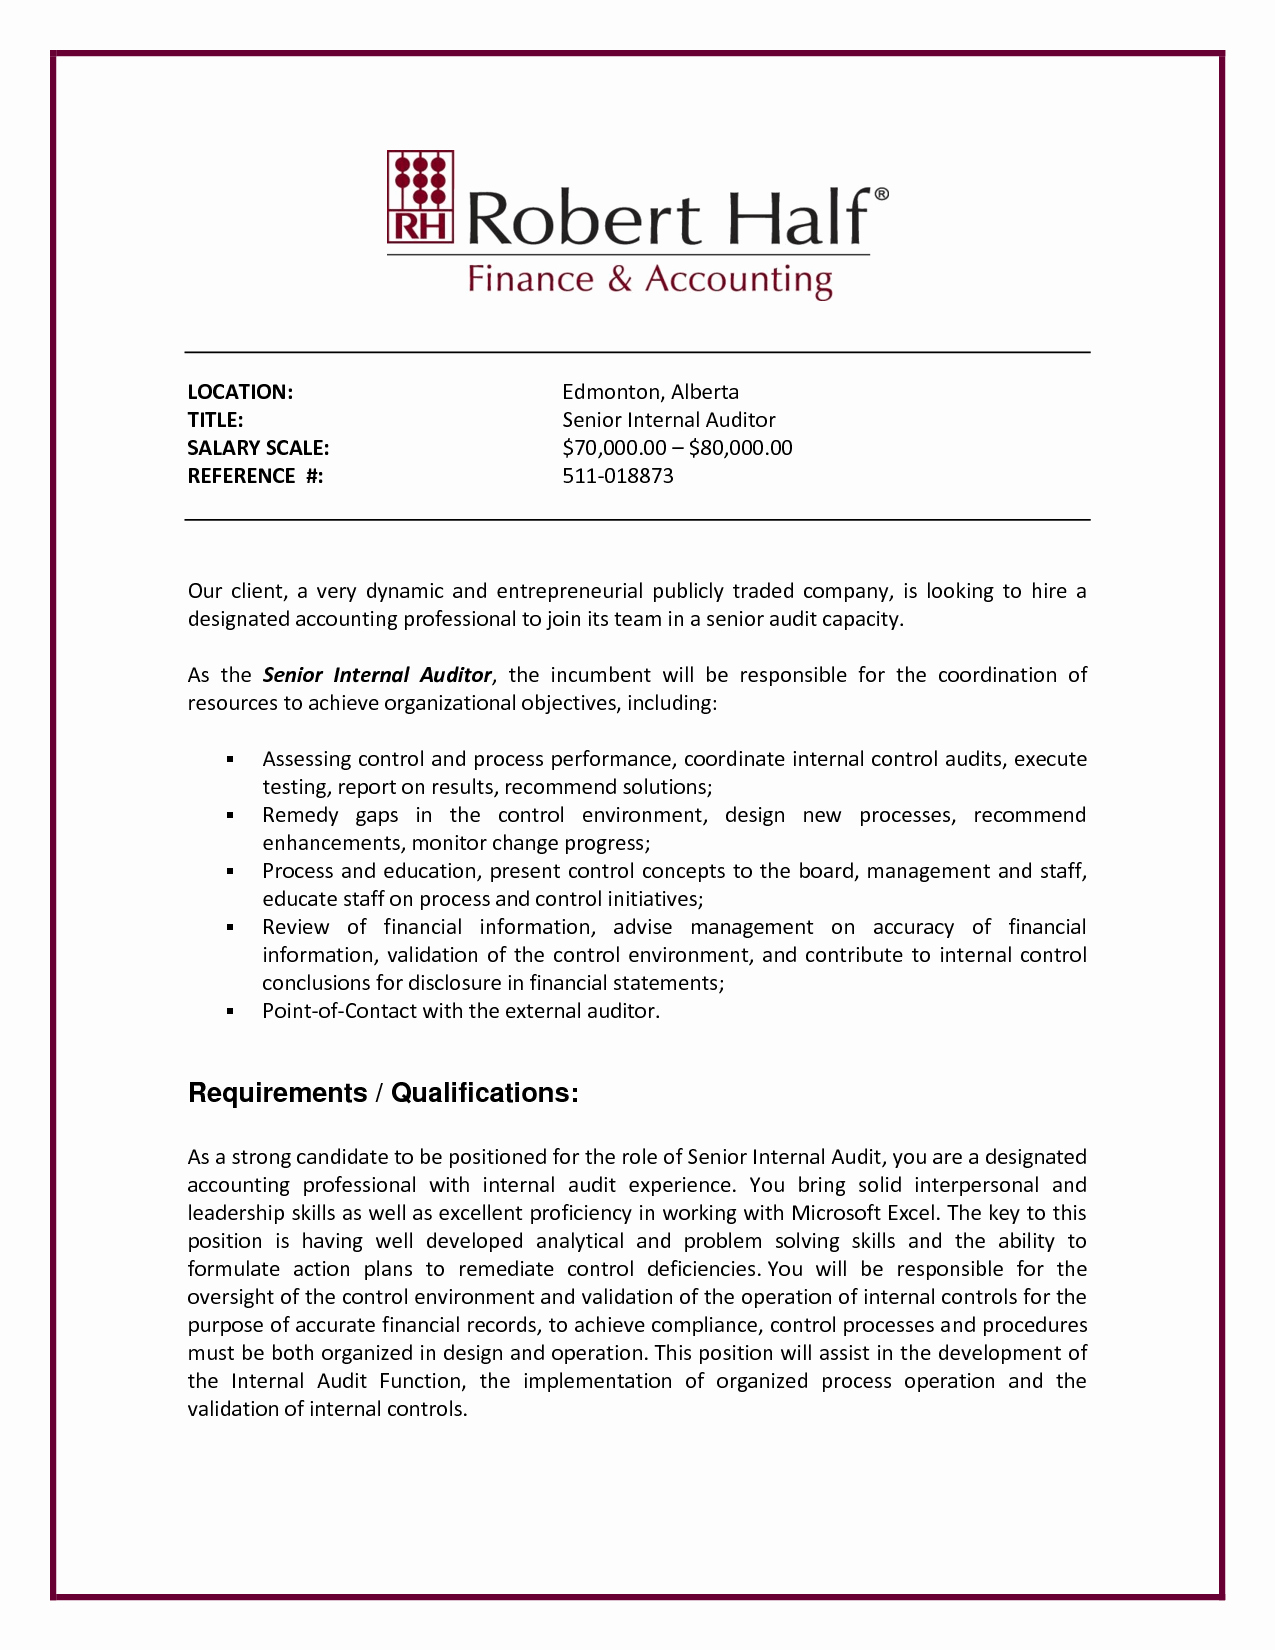 Resume for Internal Promotion Template New Resume Internal Promotion Sample Cover Letter for Job